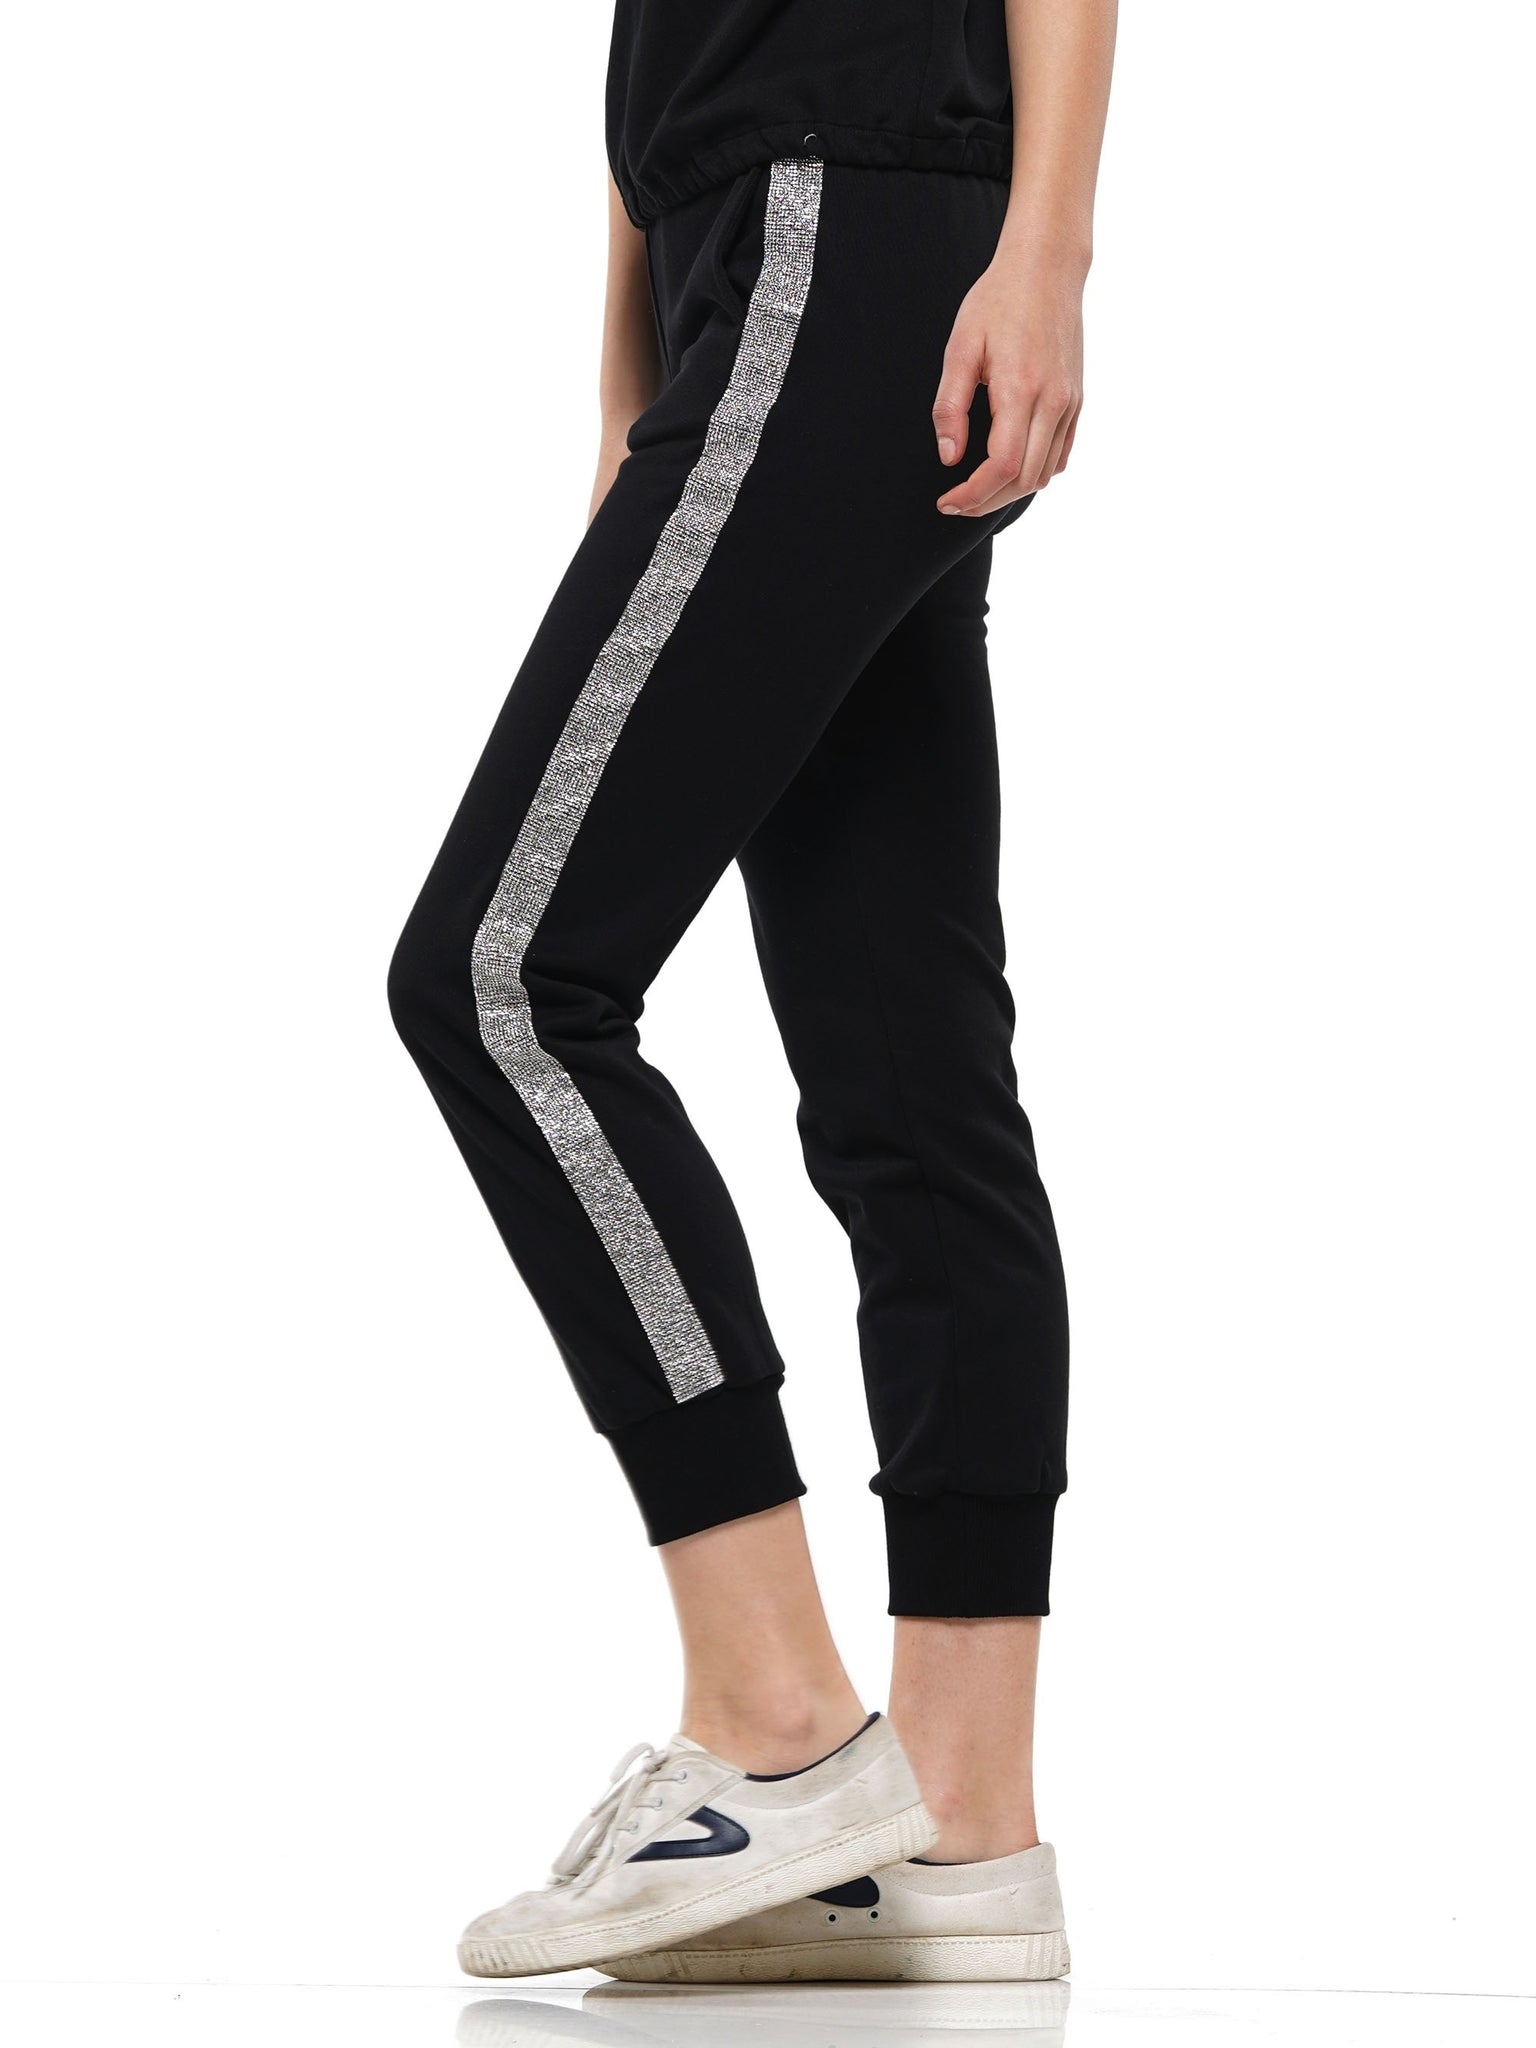 Joggers featuring heat stone trim